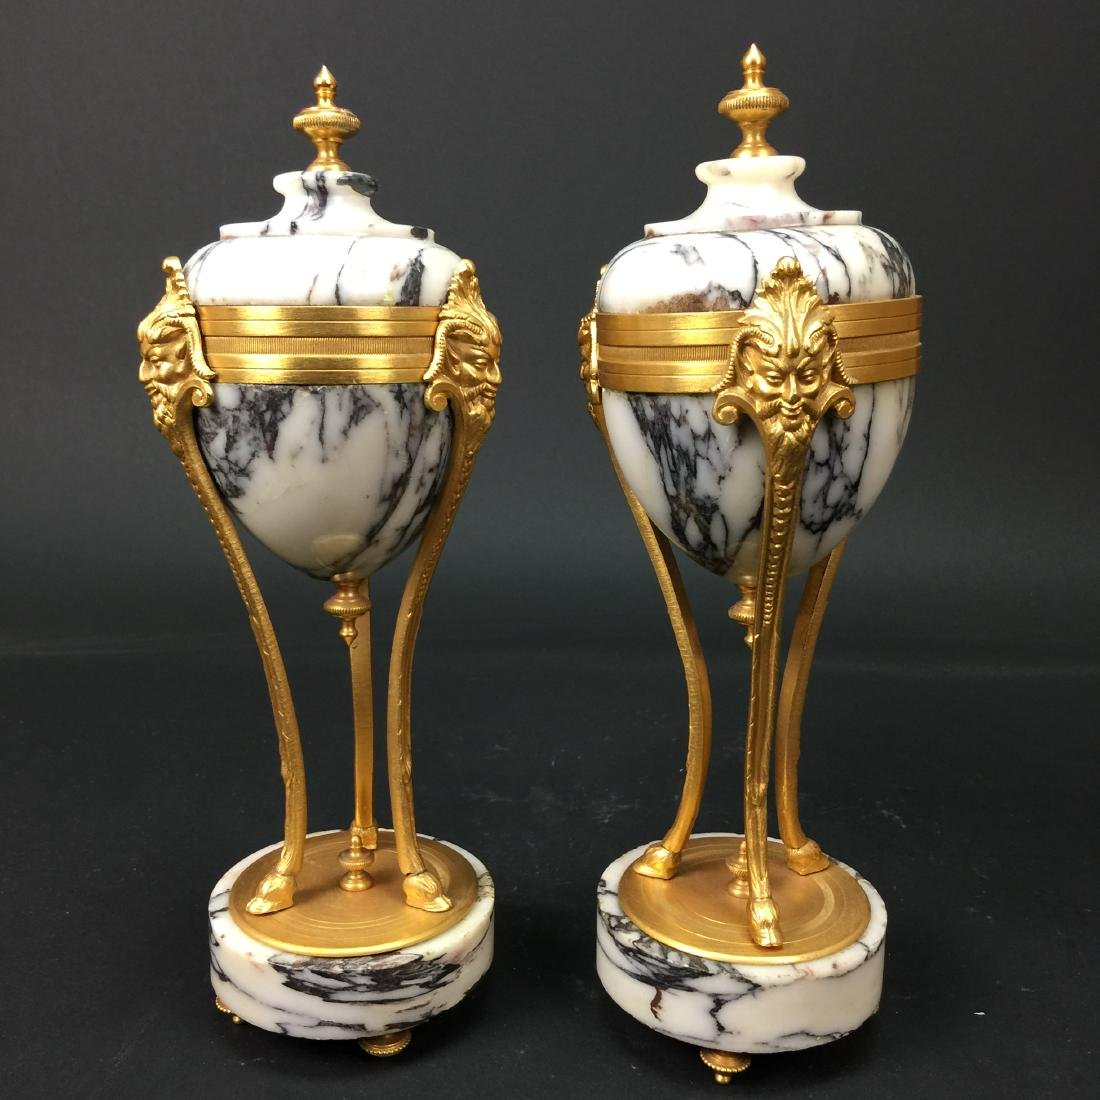 19th CENTURY A PAIR OF GILT BRONZE MARBLE VASES